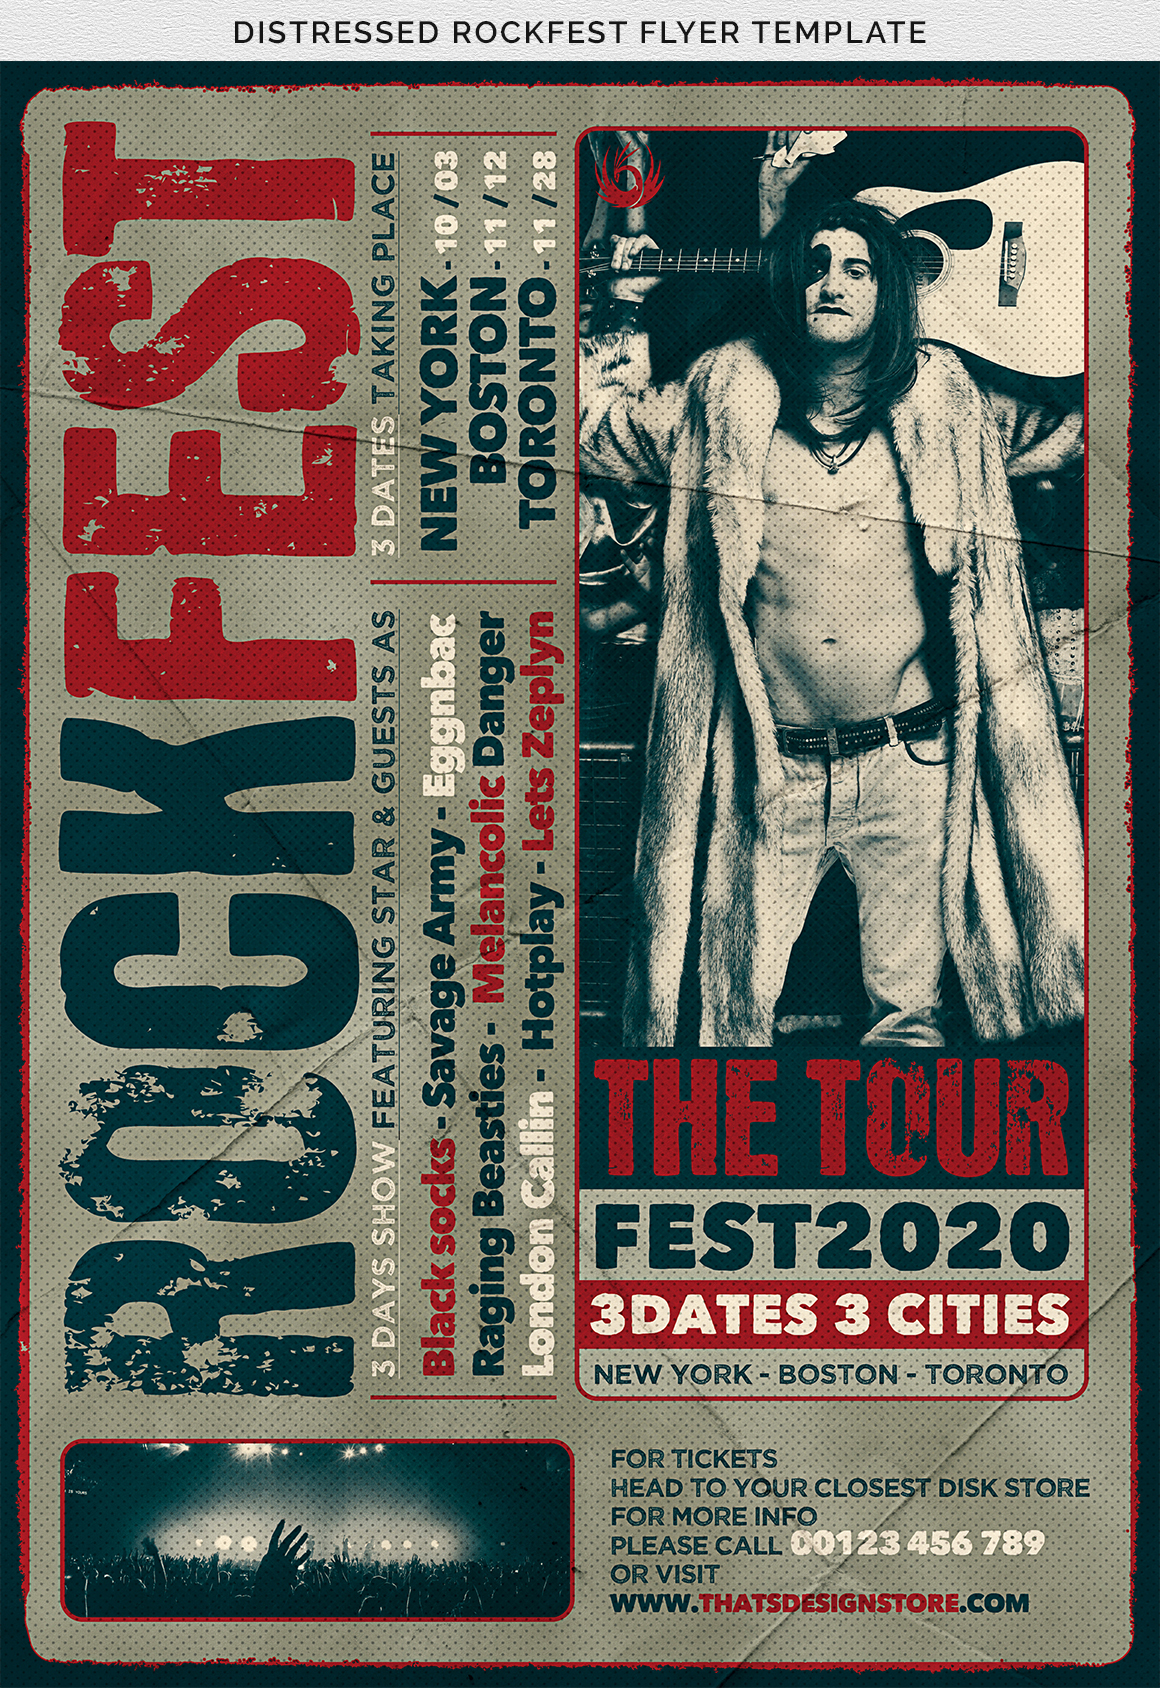 Distressed Rockfest Flyer Template example image 11